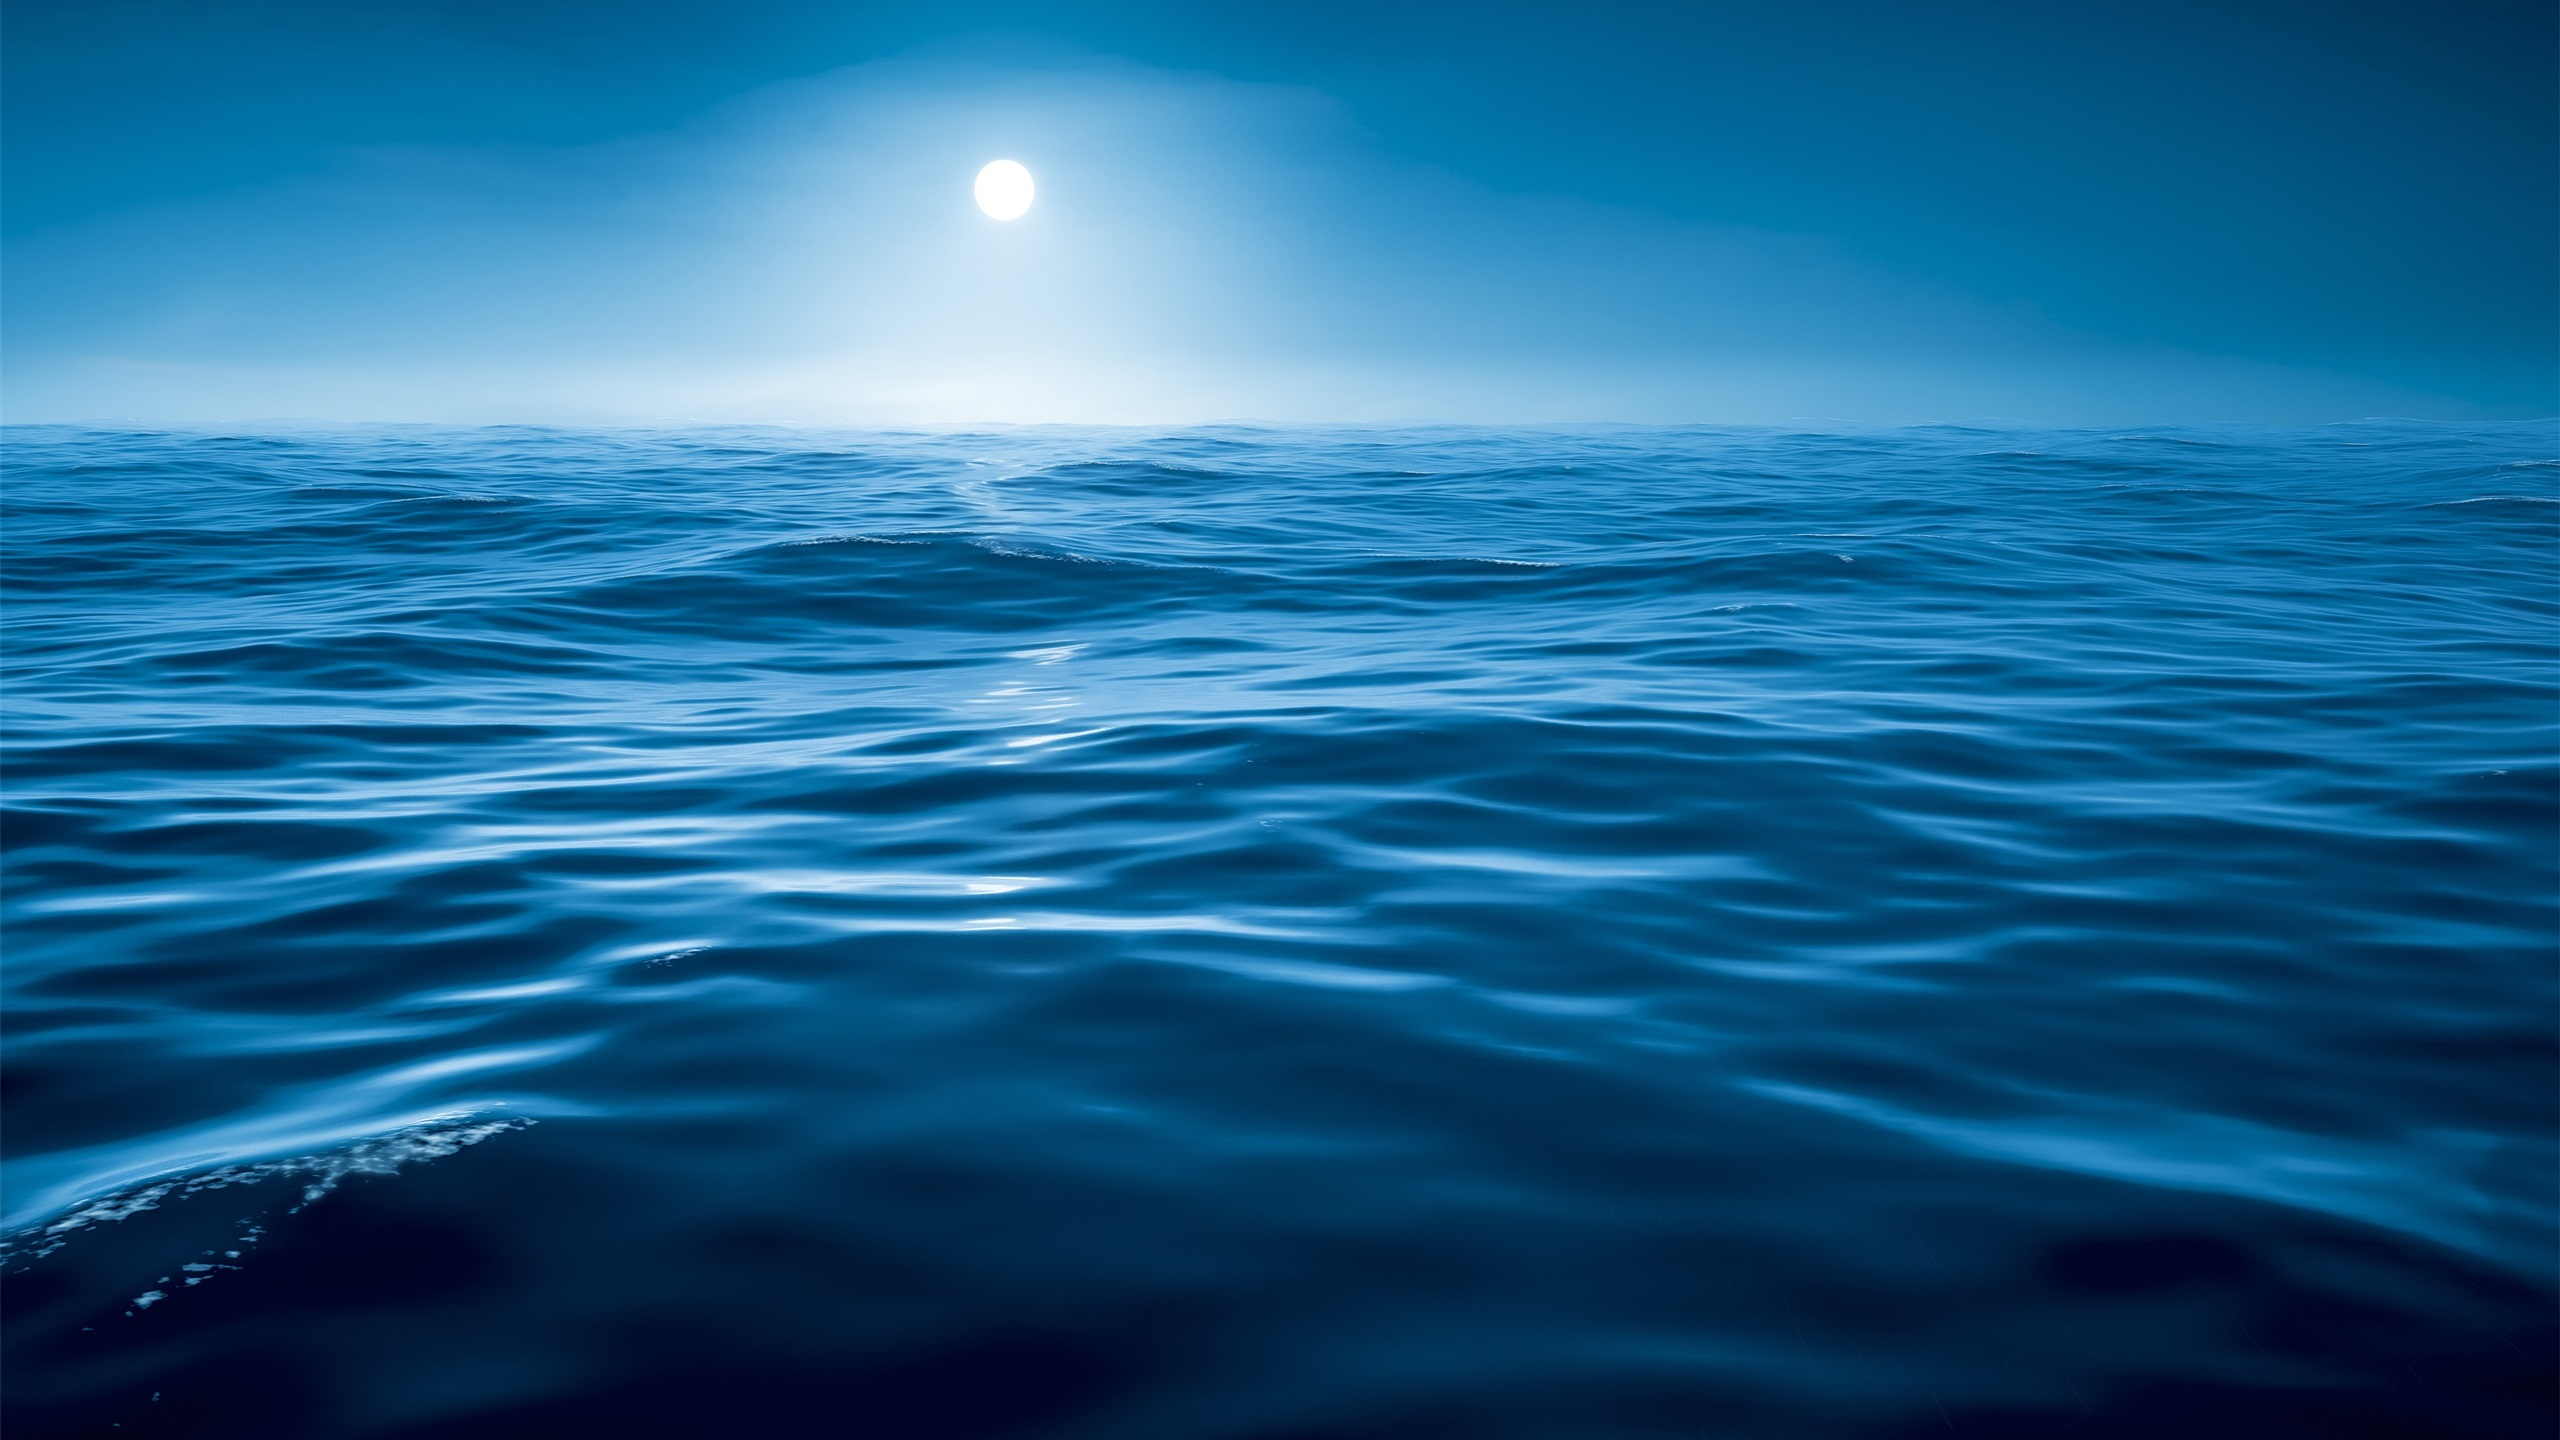 Download Wallpaper 2560x1440 Night, Water, Sea, Blue, Moon